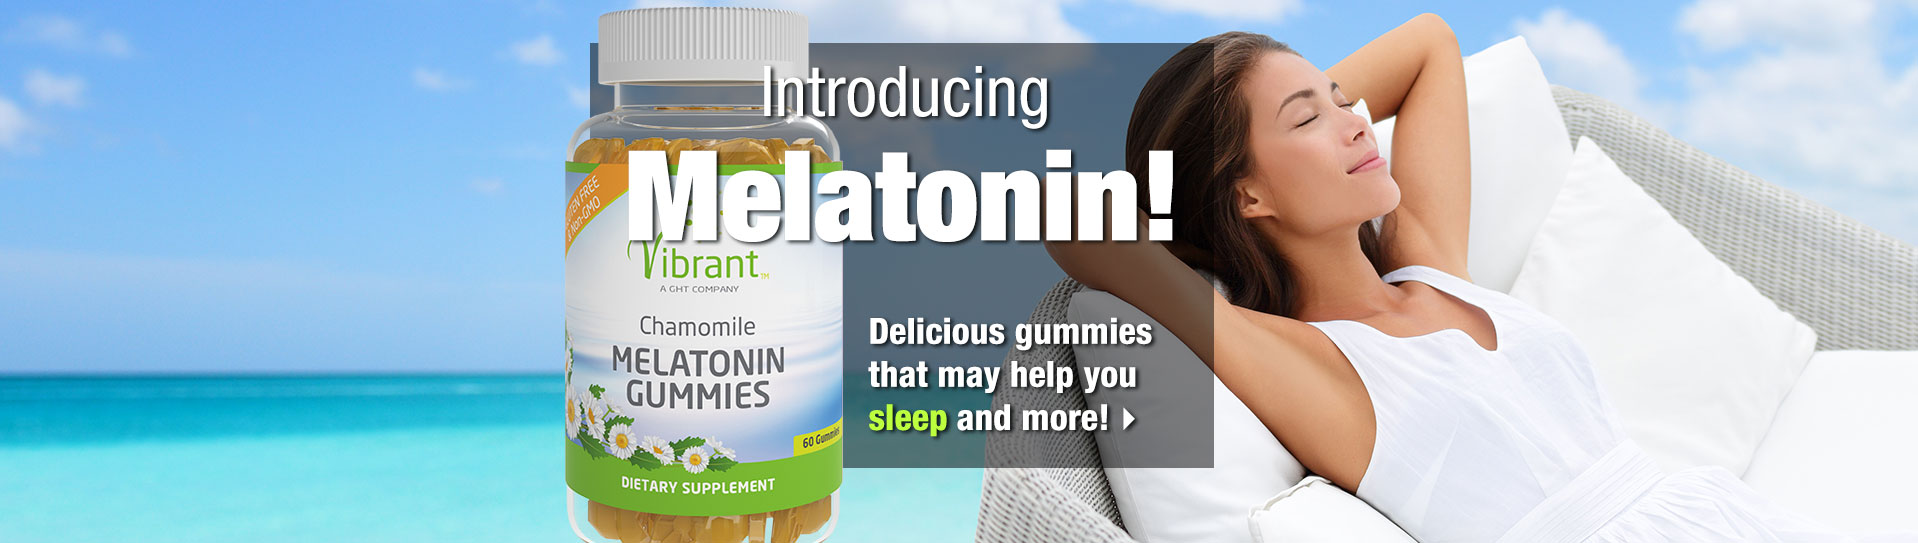 Melatonin introduction